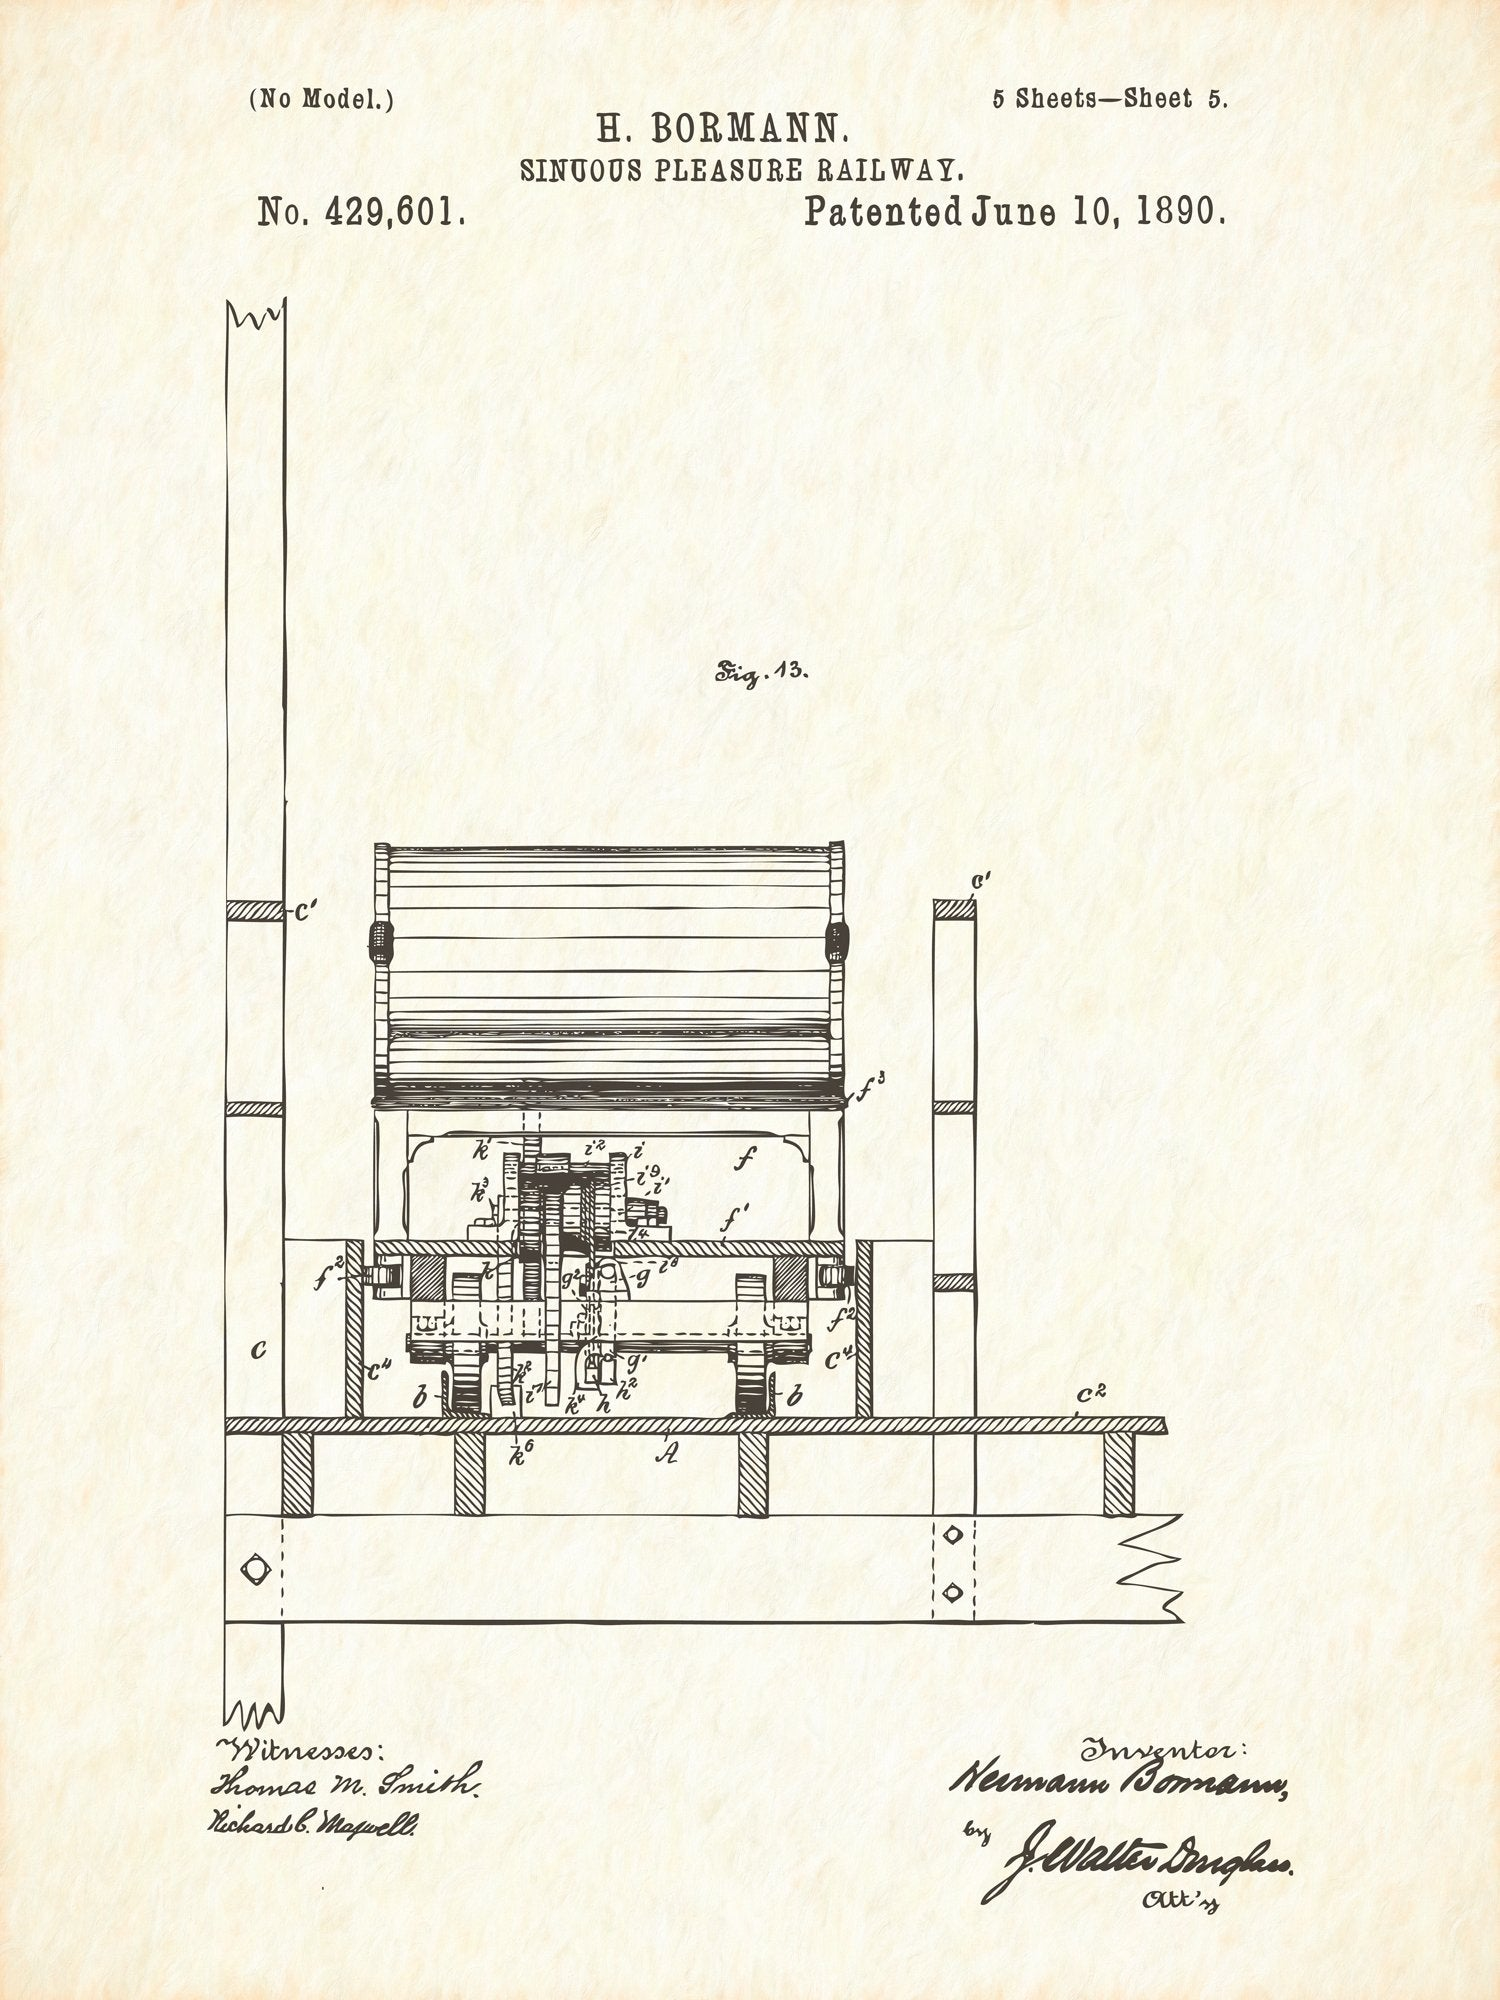 U.S. Patent No. 429601-5 Sinuous Pleasure Railway Reworked, Series 1